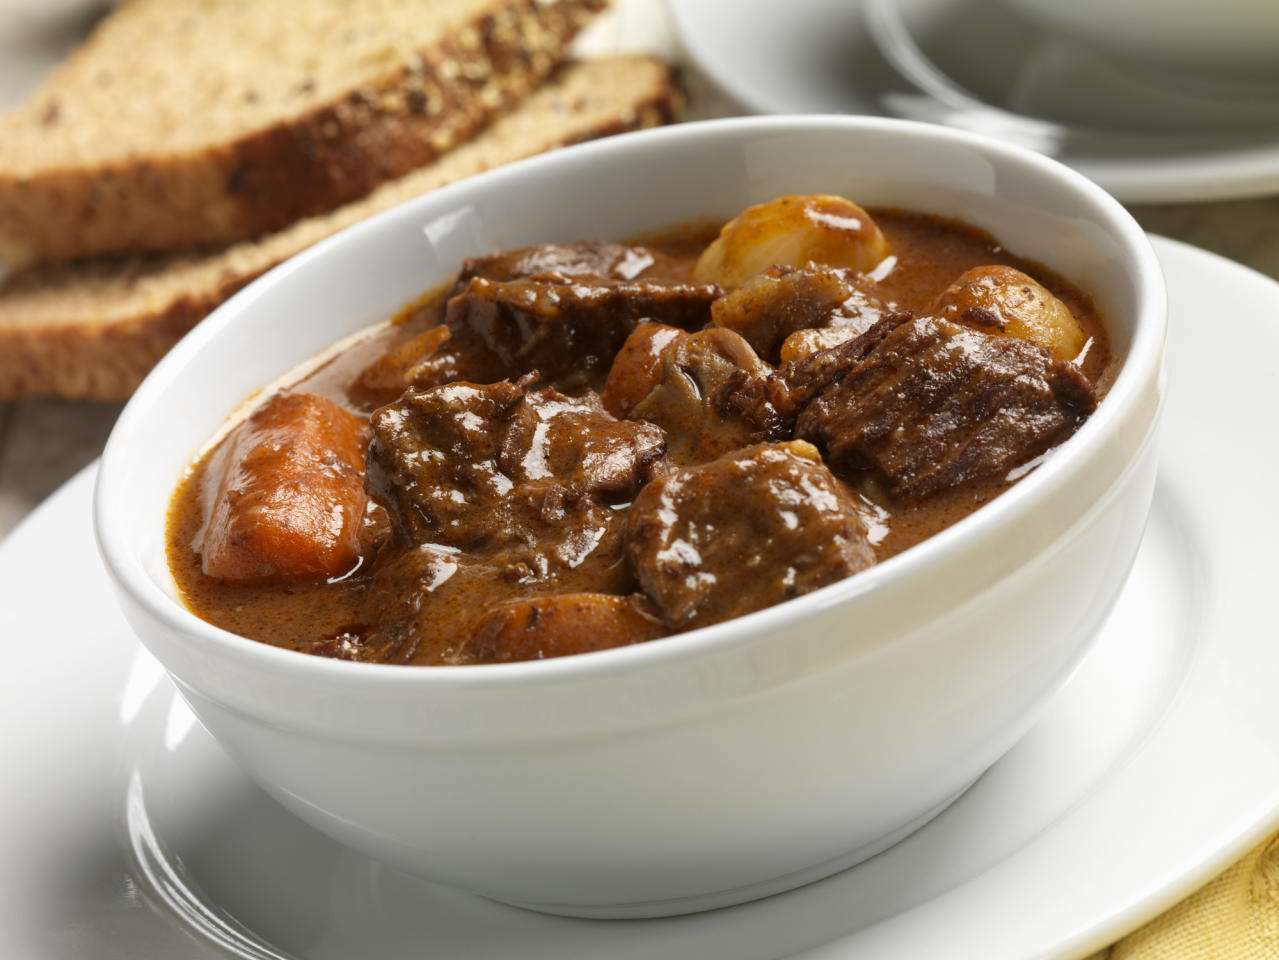 """<p>This is a classic. Simple, tasty, homely and warming. How about <a rel=""""nofollow"""" href=""""https://www.jamieoliver.com/recipes/beef-recipes/jools-s-favourite-beef-stew/"""">Jamie Oliver's recipe</a> – no wonder it's apparently his wife Jools' favourite? [Photo: Getty] </p>"""